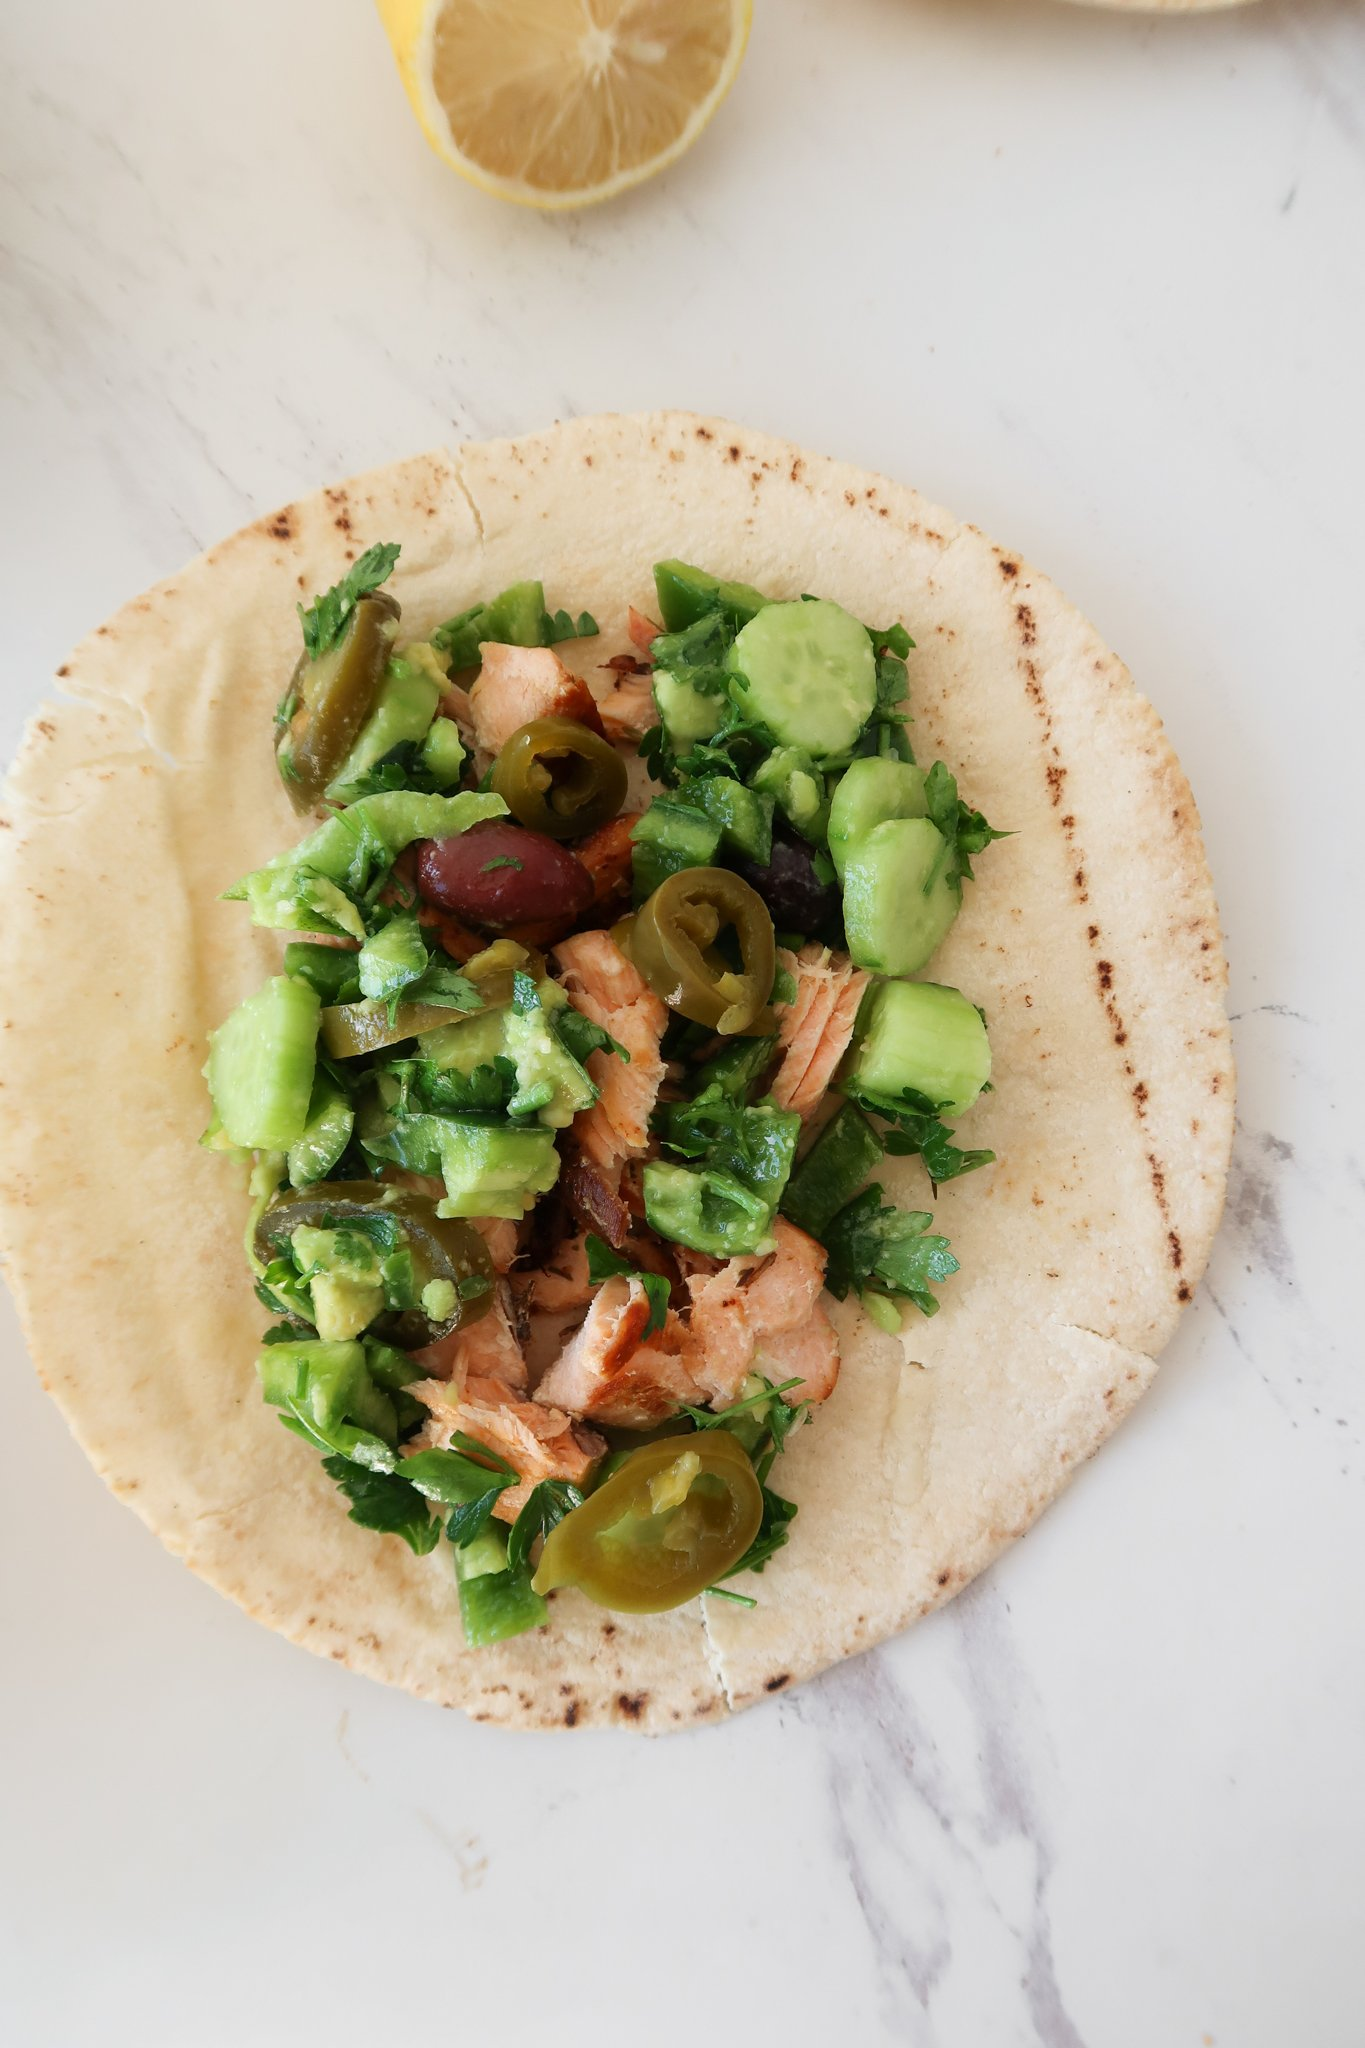 Mediterranean salmon wraps: a 30-minute delicious healthy dinner idea! So easy and quick, this salmon recipe makes 3 servings and is great for meal prep too!